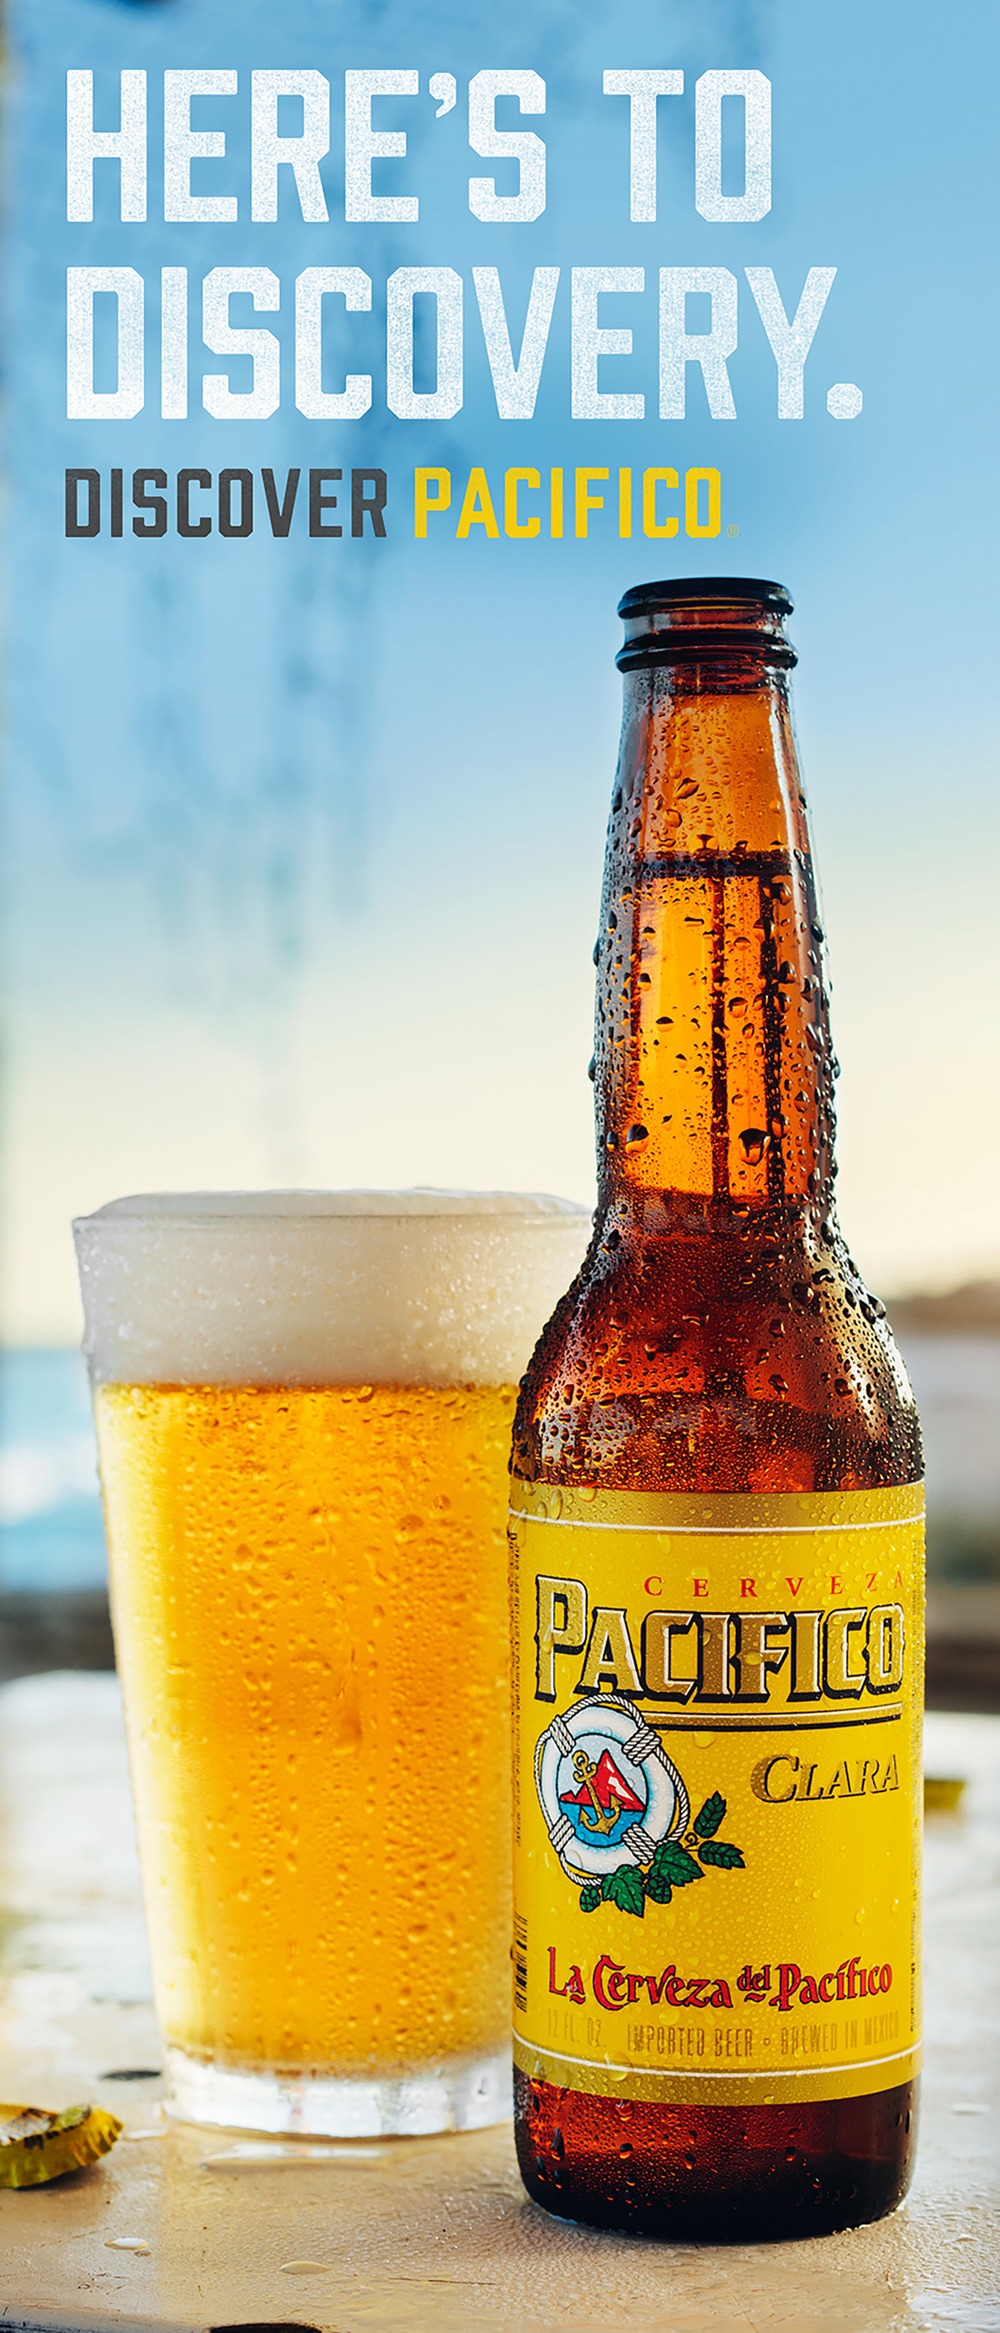 PACIFICO Vertical Heres to Discovery.jpg